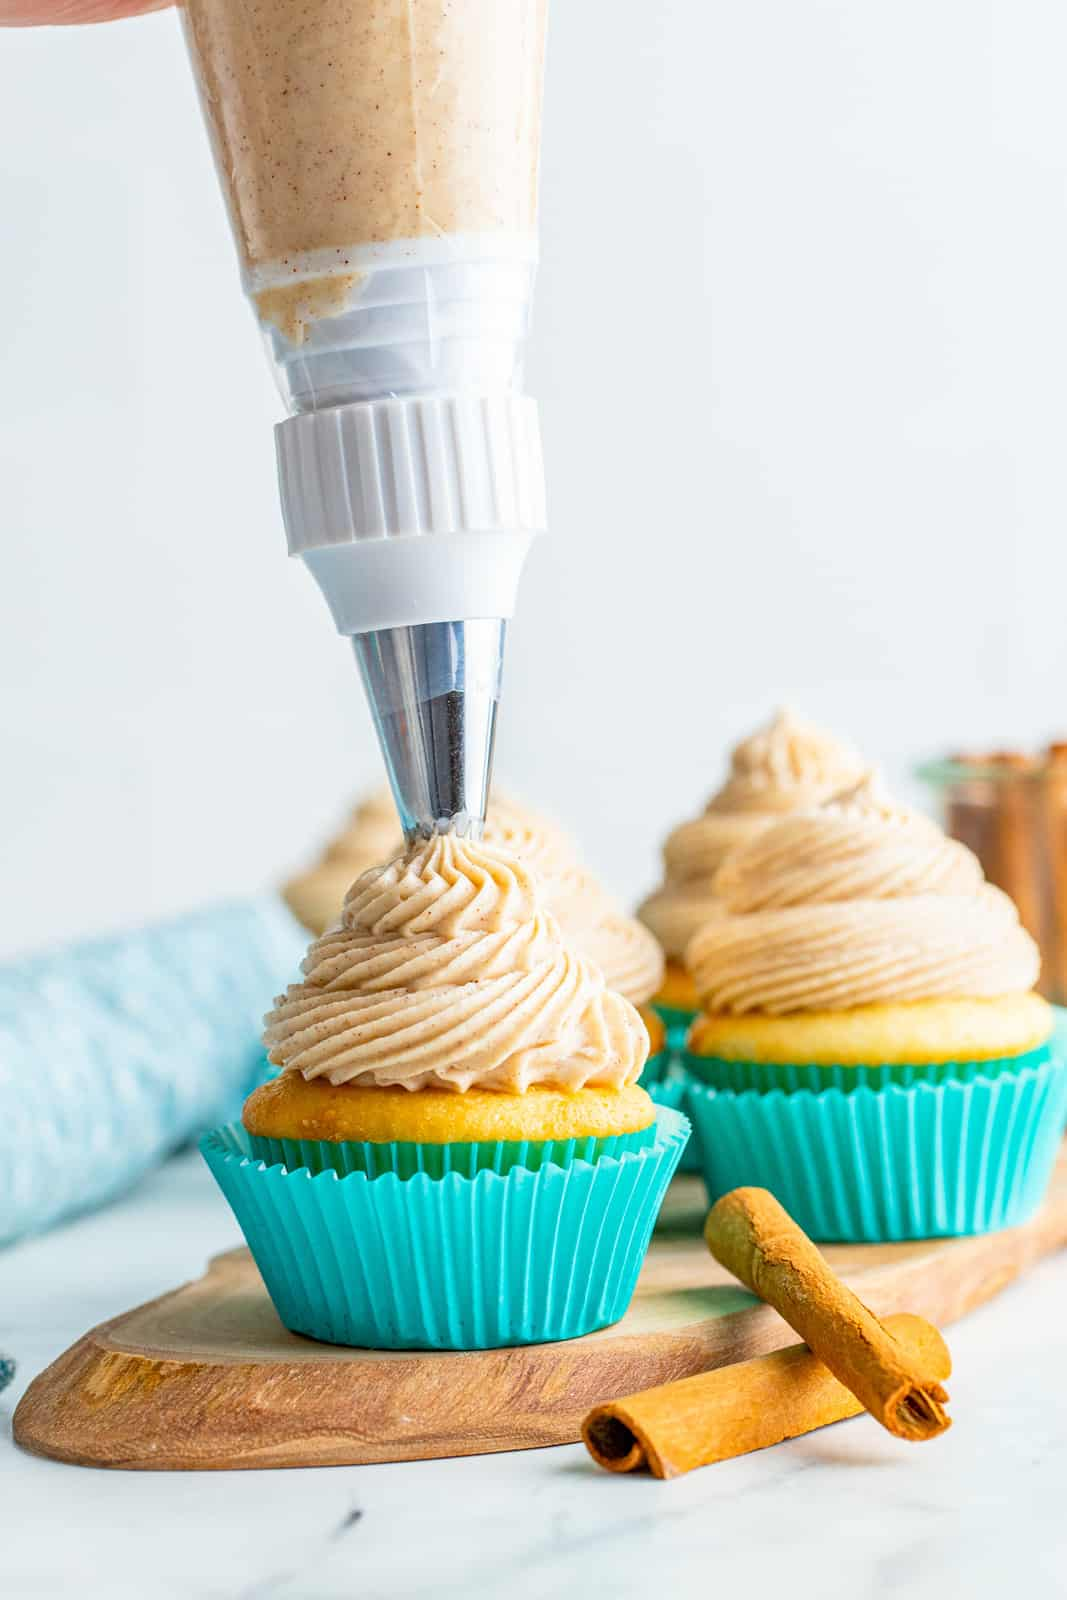 Pag piping Cinnamon Cream Cheese Frosting onto cupcake